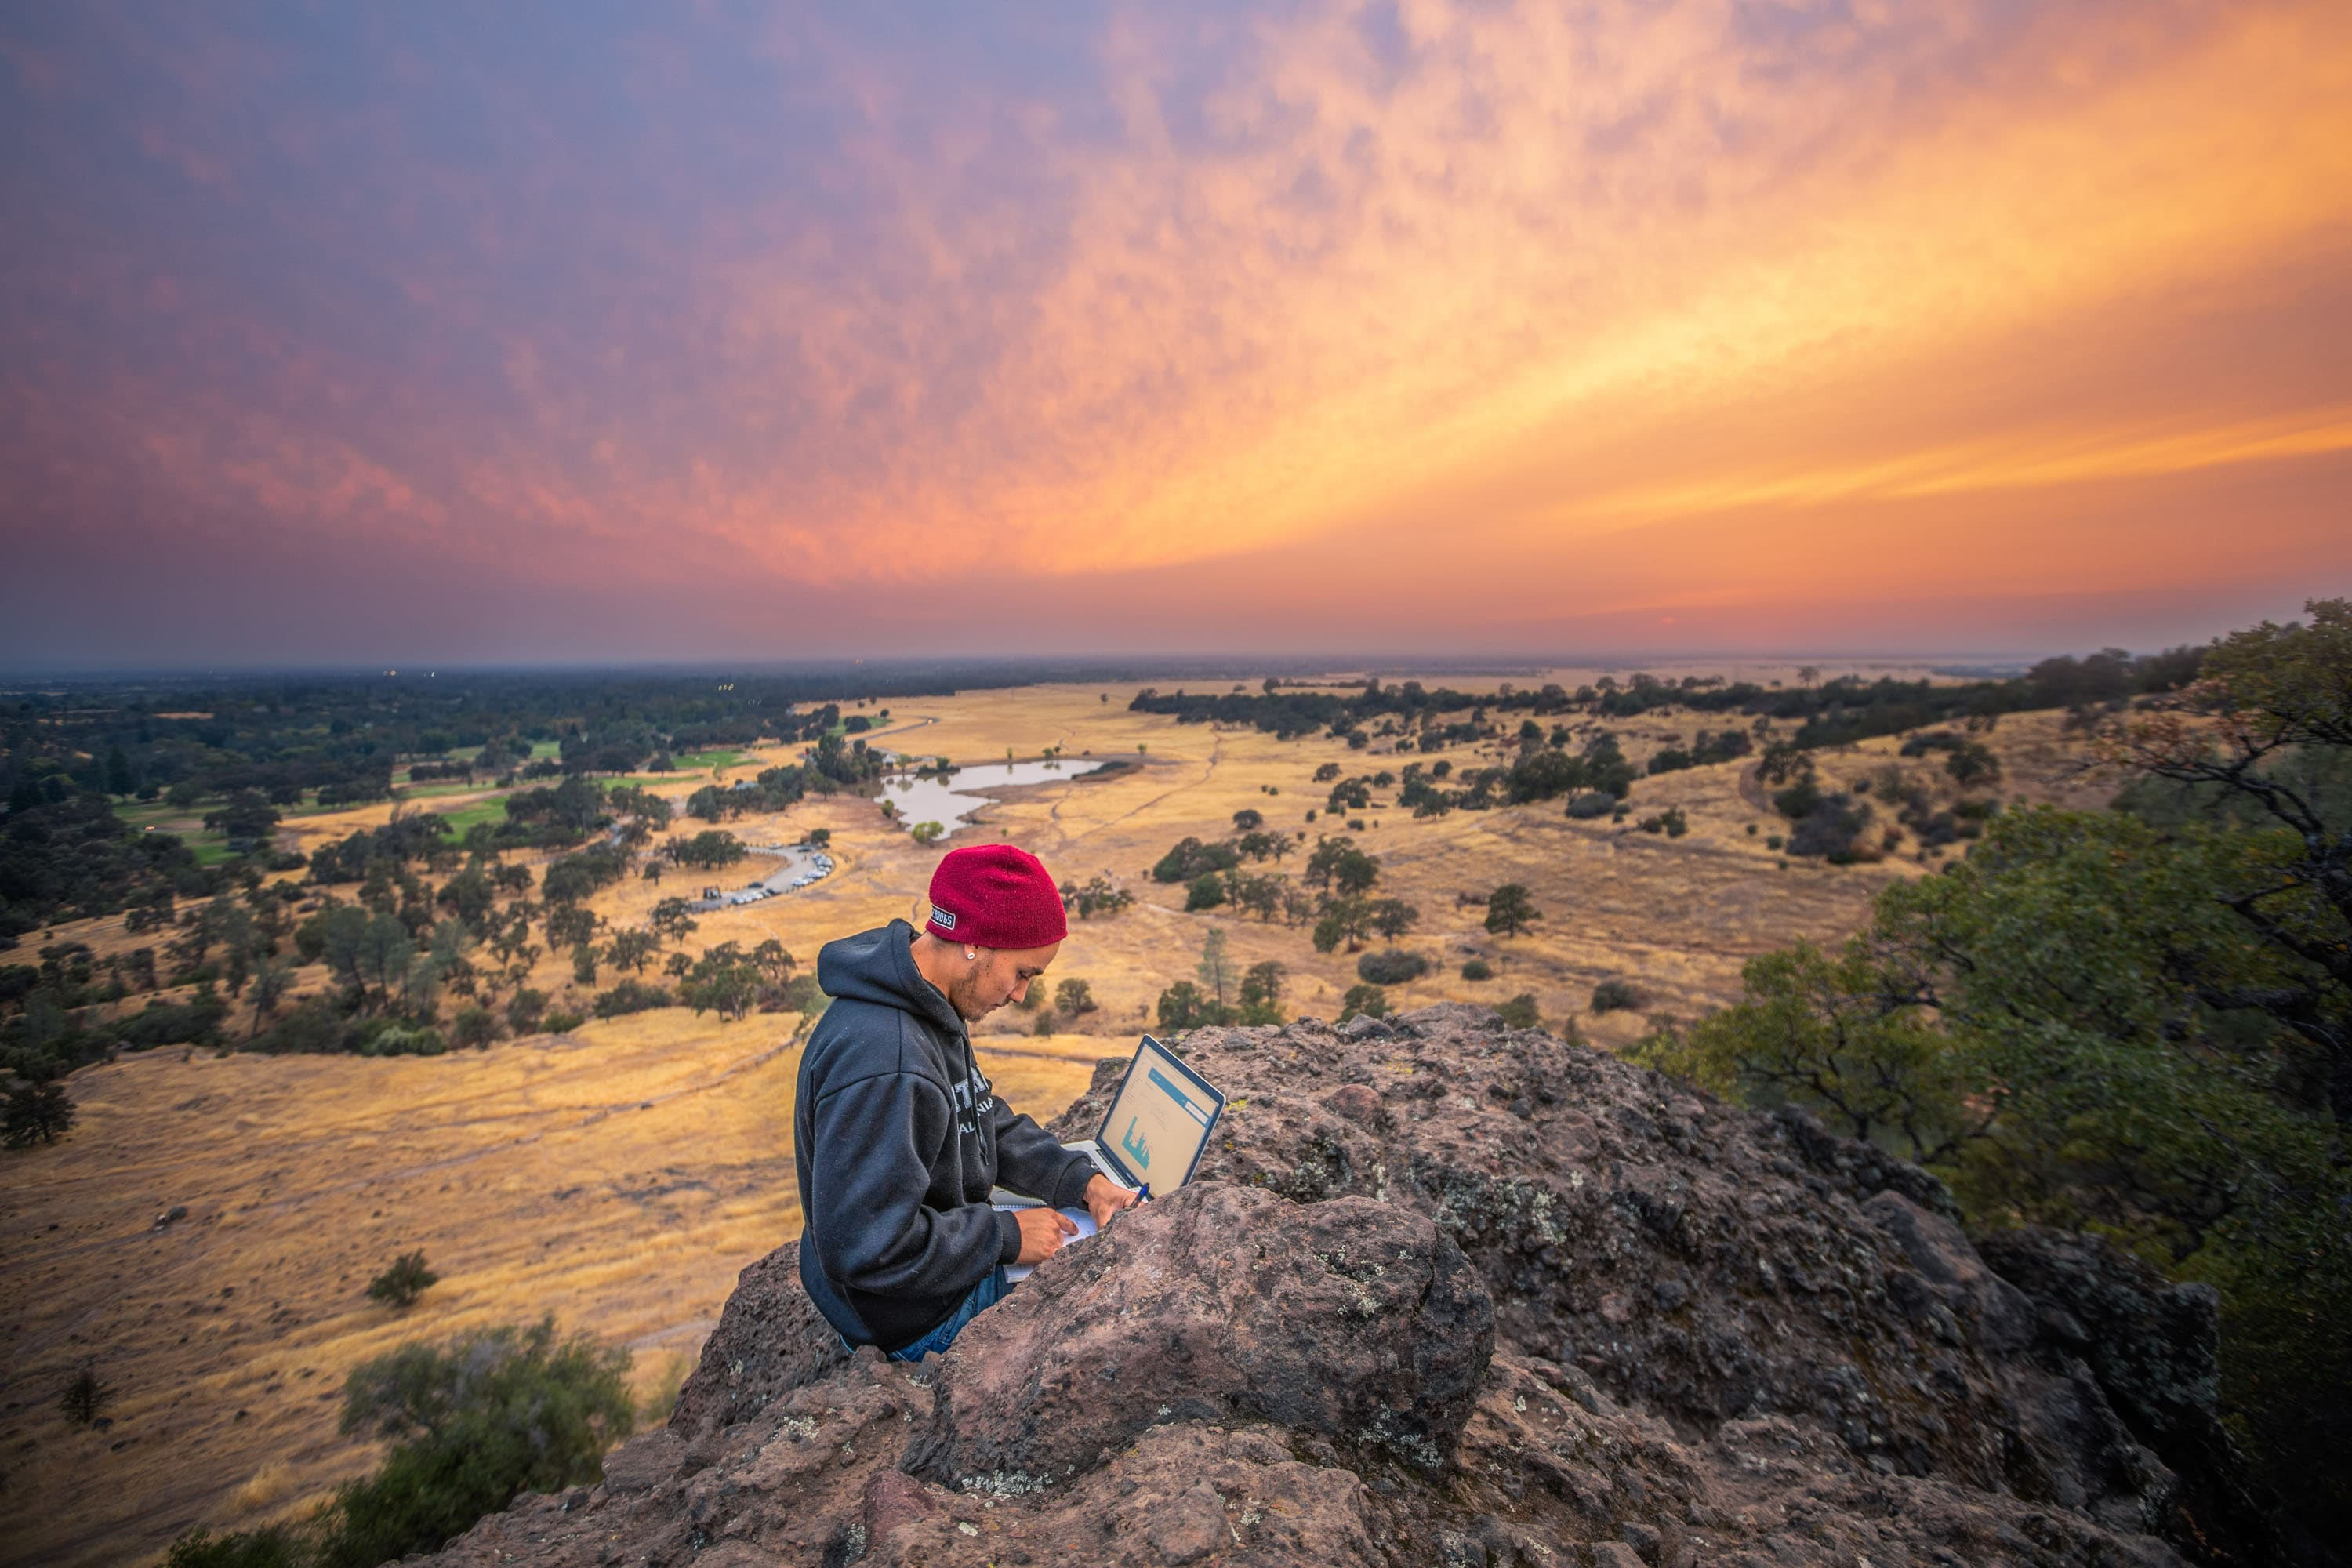 banner image- man on laptop ontop of a mountain overlooking openland and sunset